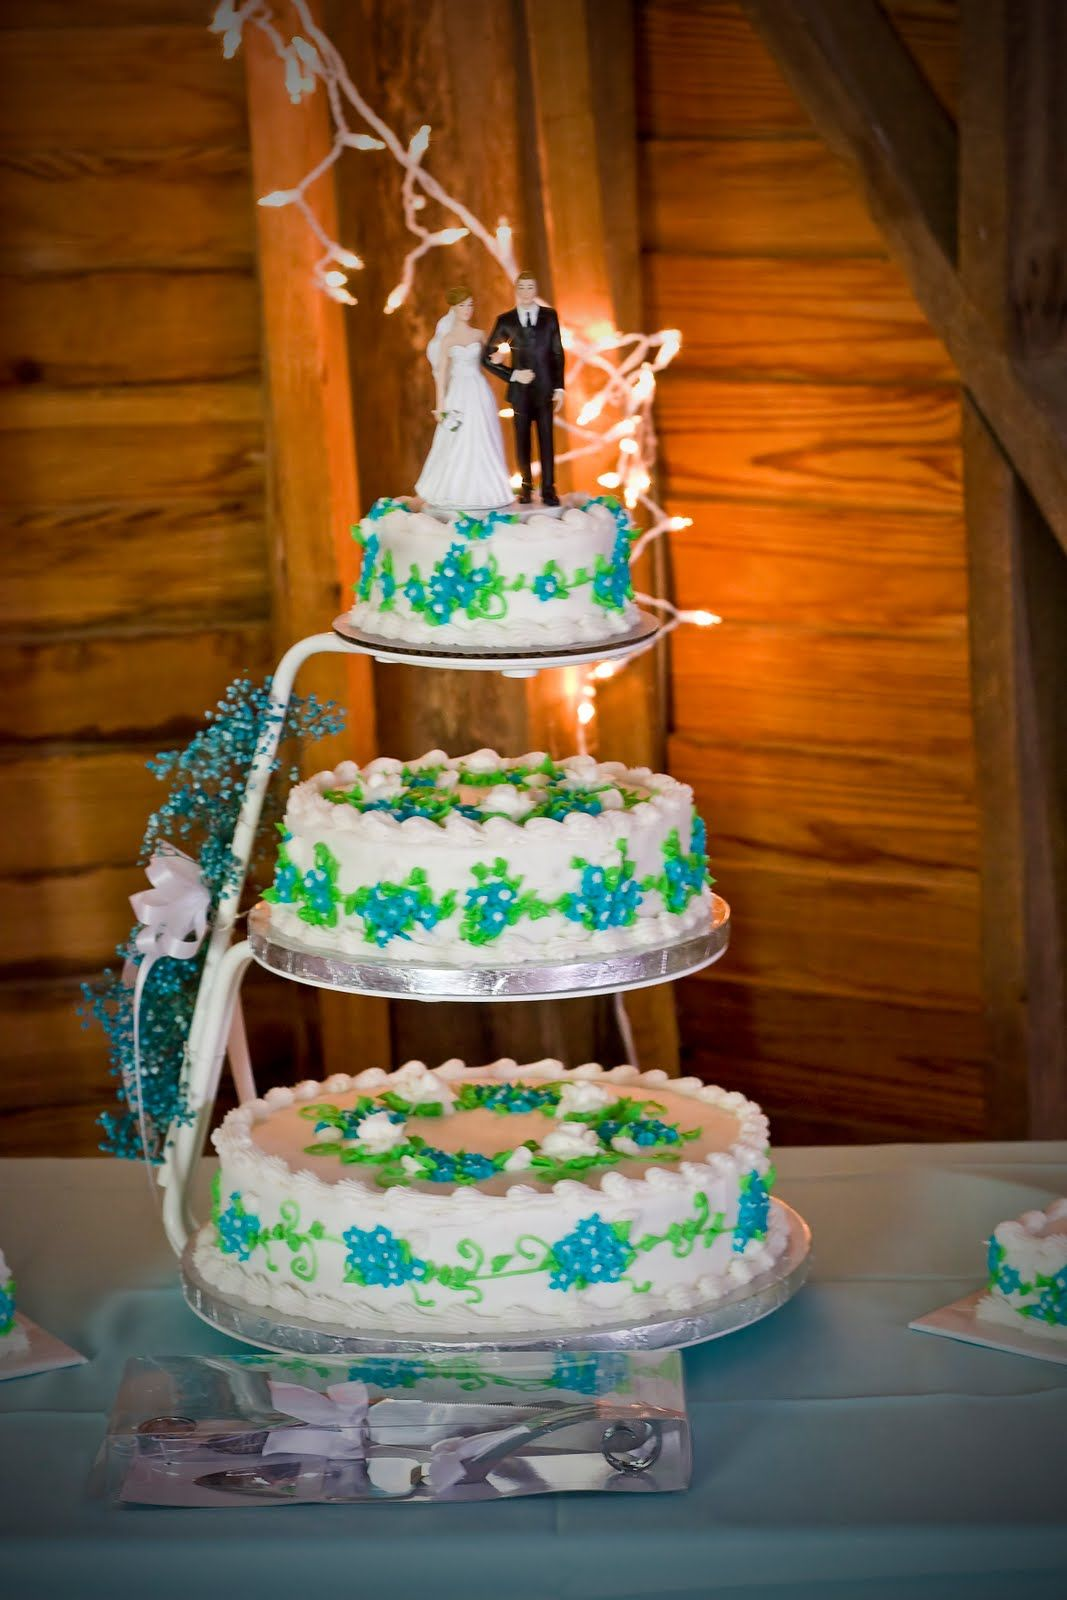 aqua blue wedding cake | Aqua blue wedding, Wedding cakes ...